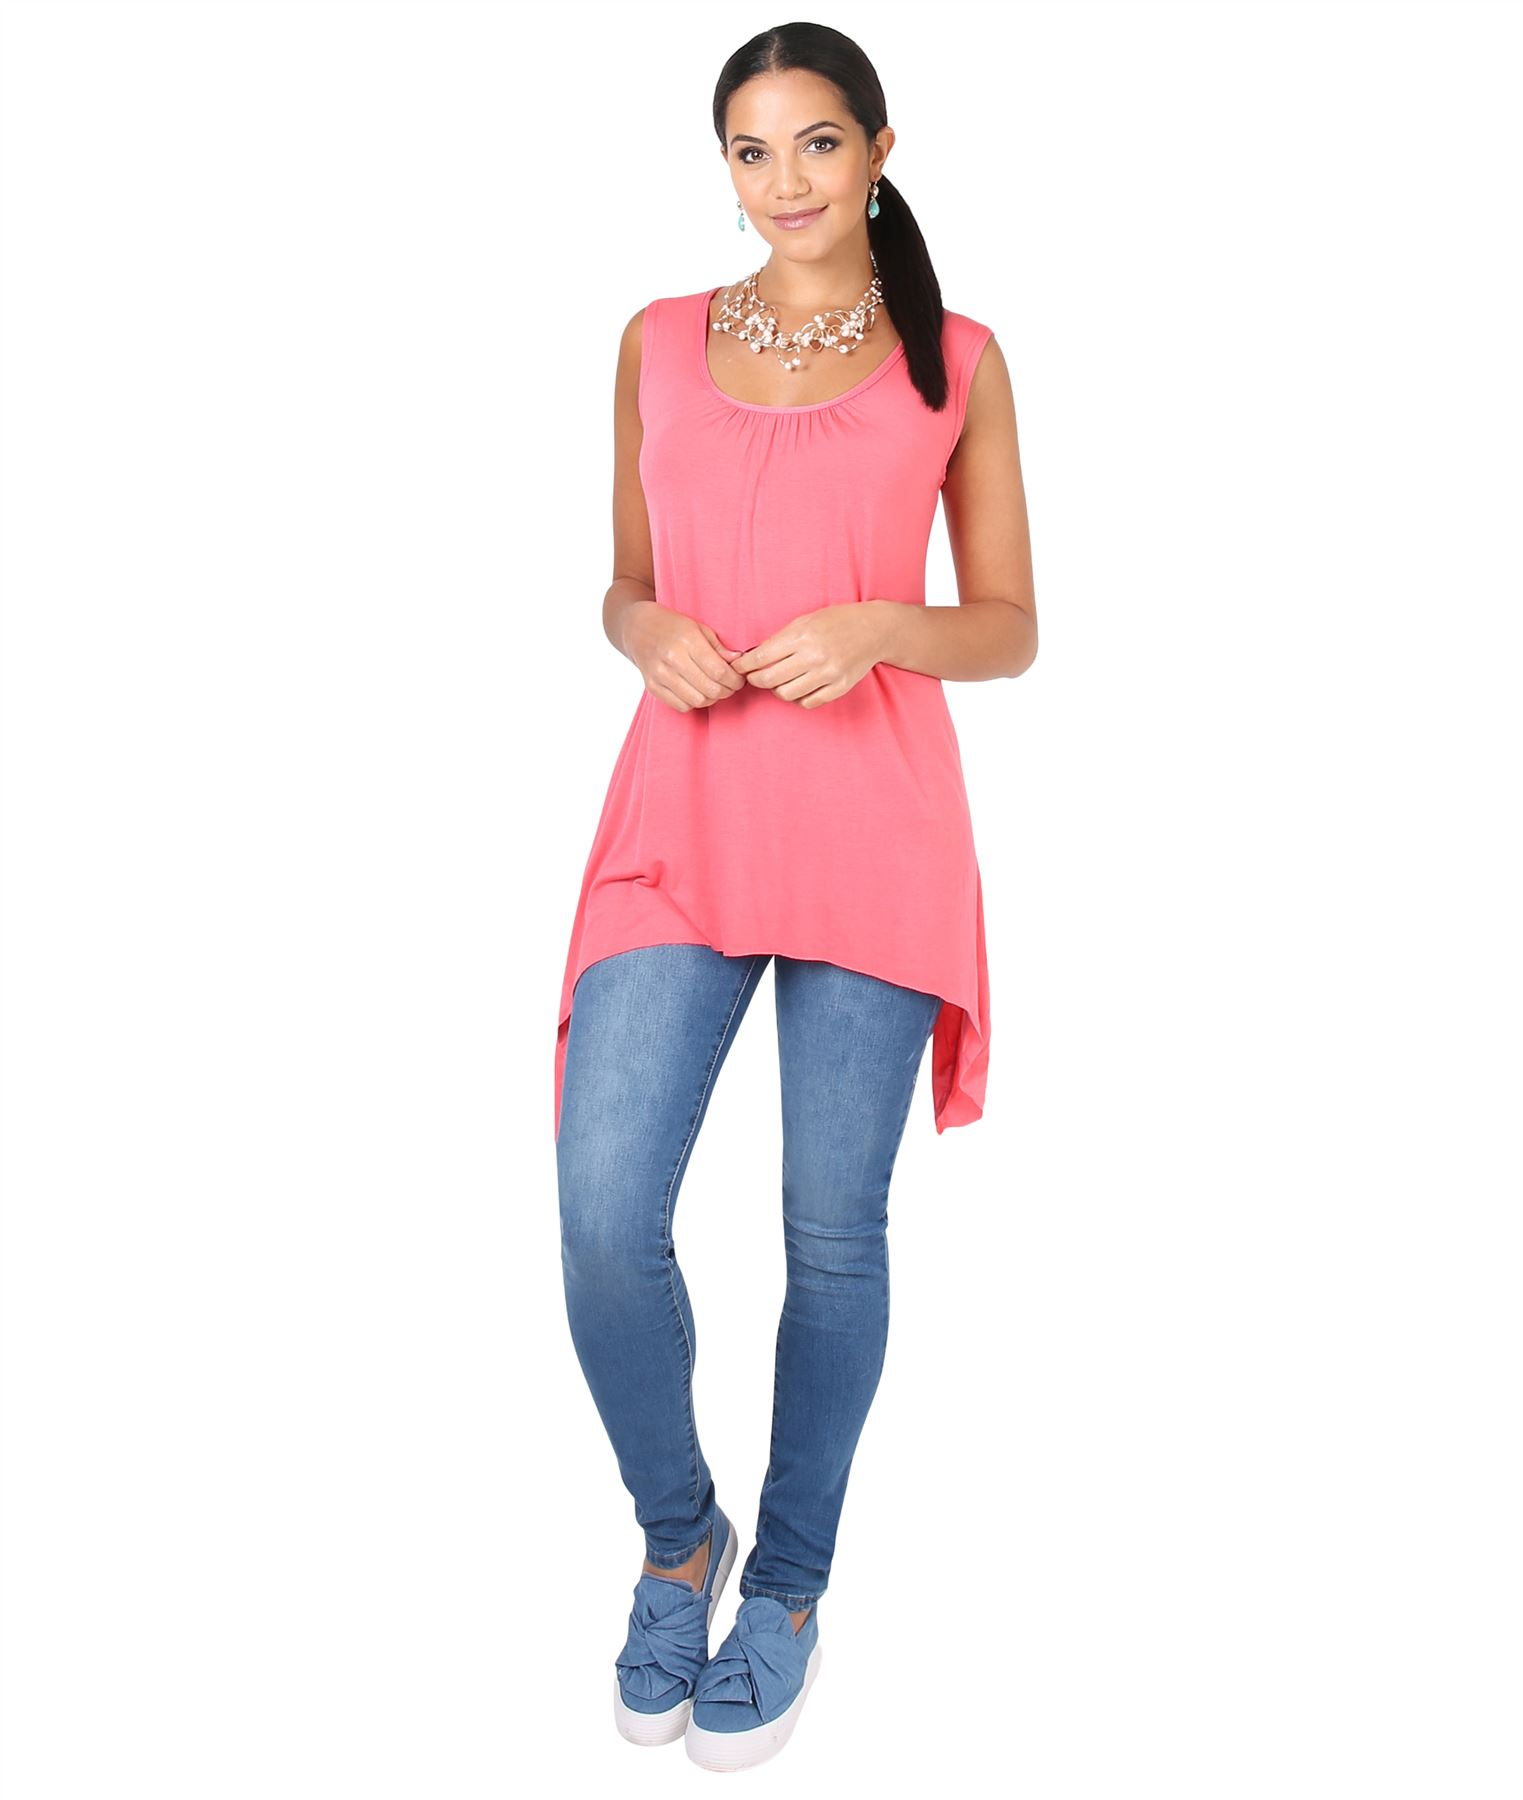 Women-Long-Top-Sleeveless-Pleated-Tee-Shirt-Tunic-Jersey-Stretch-Loose-Fit thumbnail 10